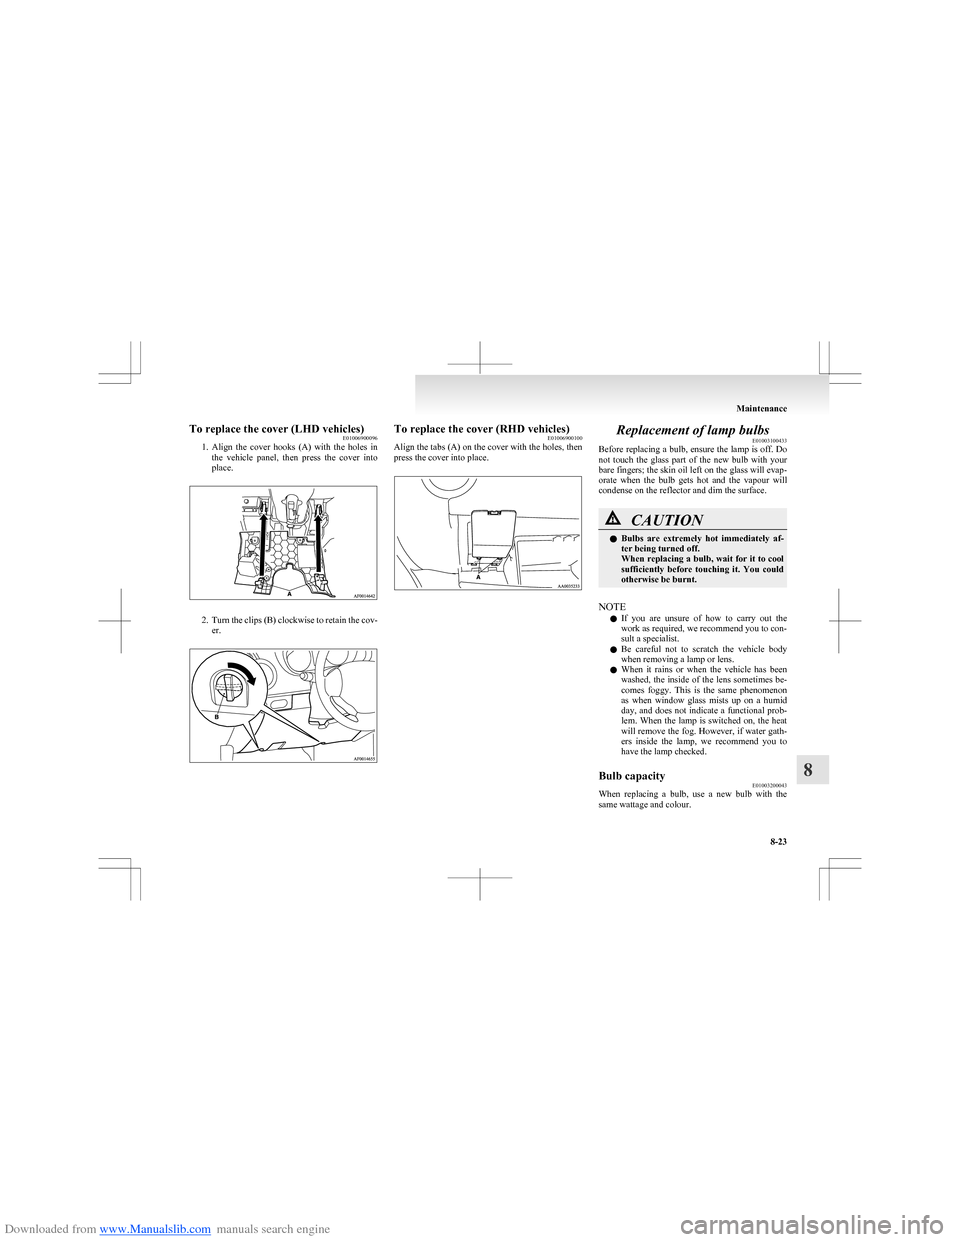 Mitsubishi Colt 2009 10g Owners Manual Dim Engine Diagram